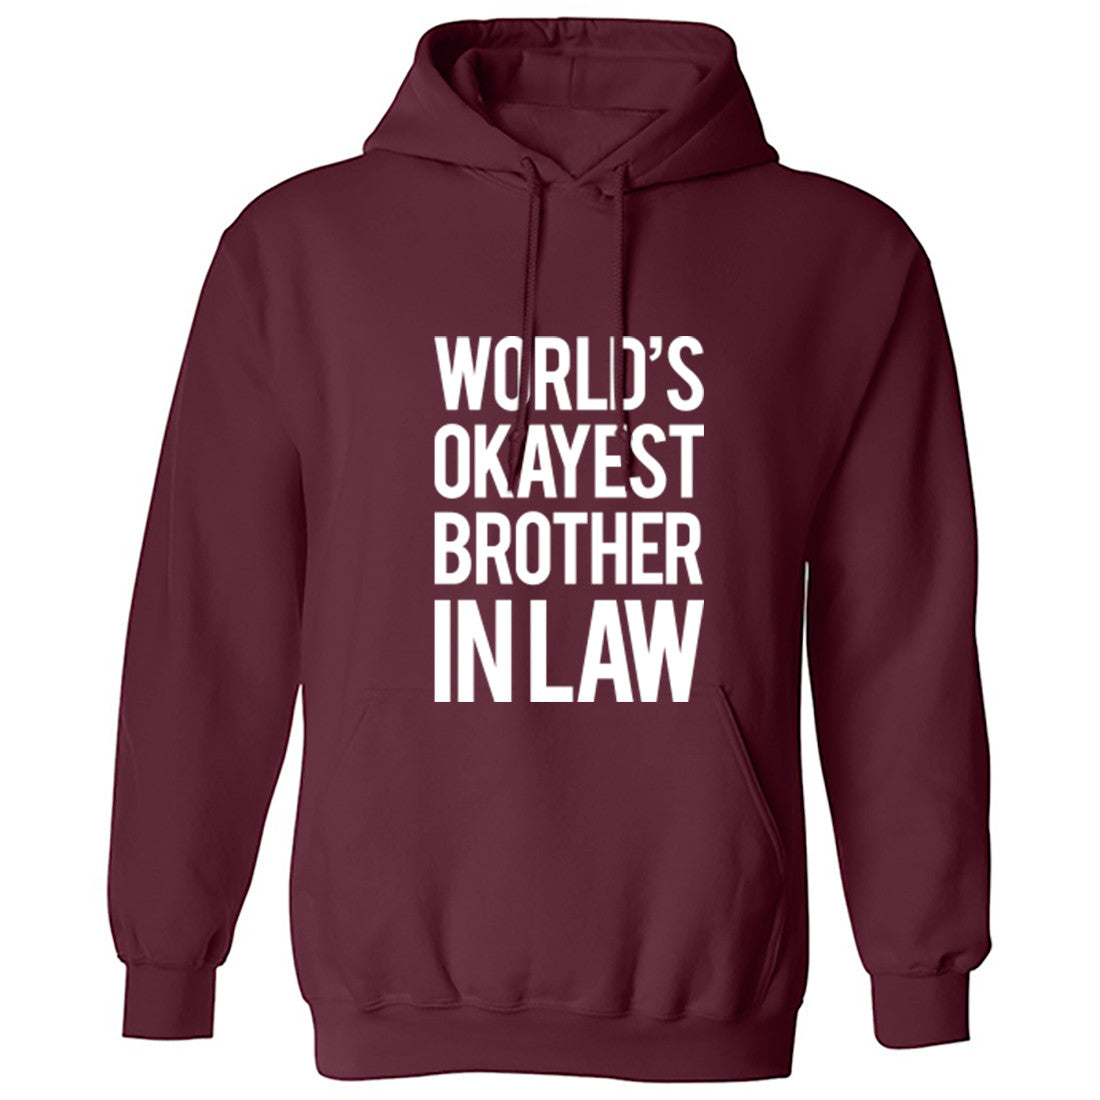 Worlds Okayest Brother In Law Unisex Hoodie K0247 - Illustrated Identity Ltd.